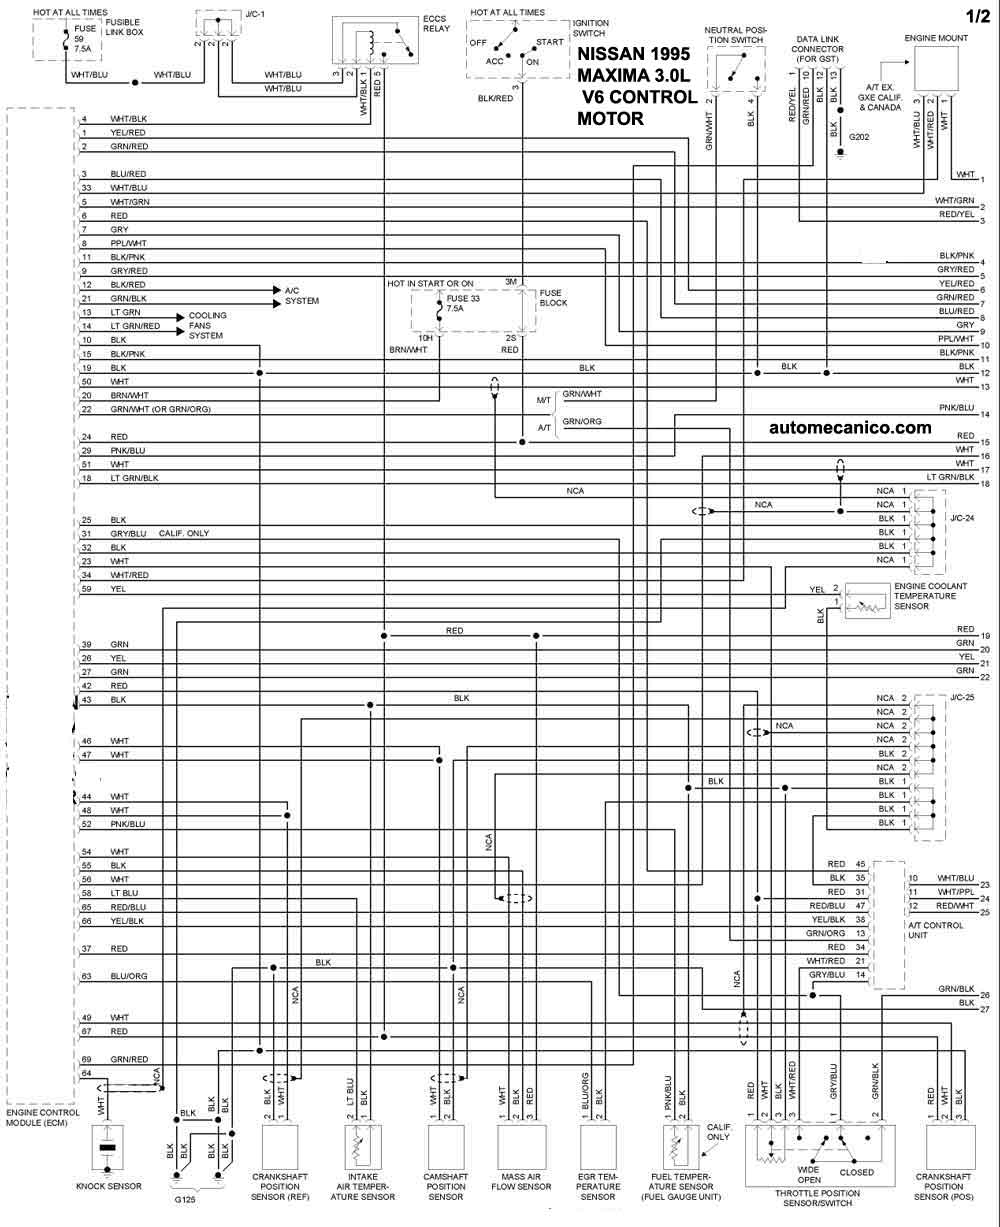 diagrama electrico automotriz for nissan diagramas